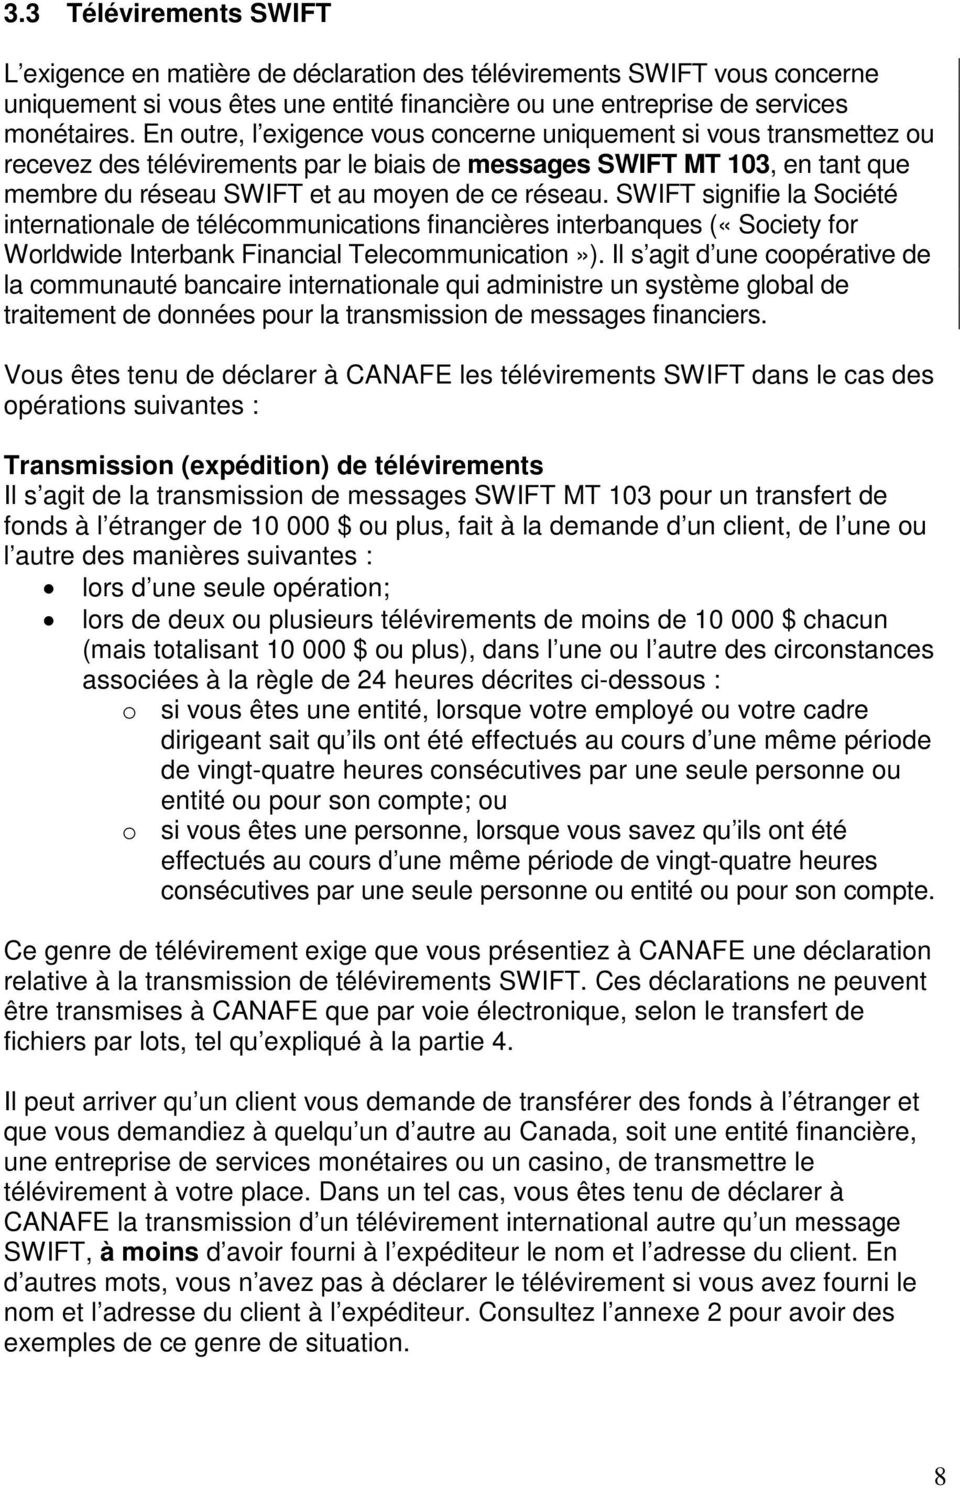 SWIFT signifie la Société internationale de télécommunications financières interbanques («Society for Worldwide Interbank Financial Telecommunication»).